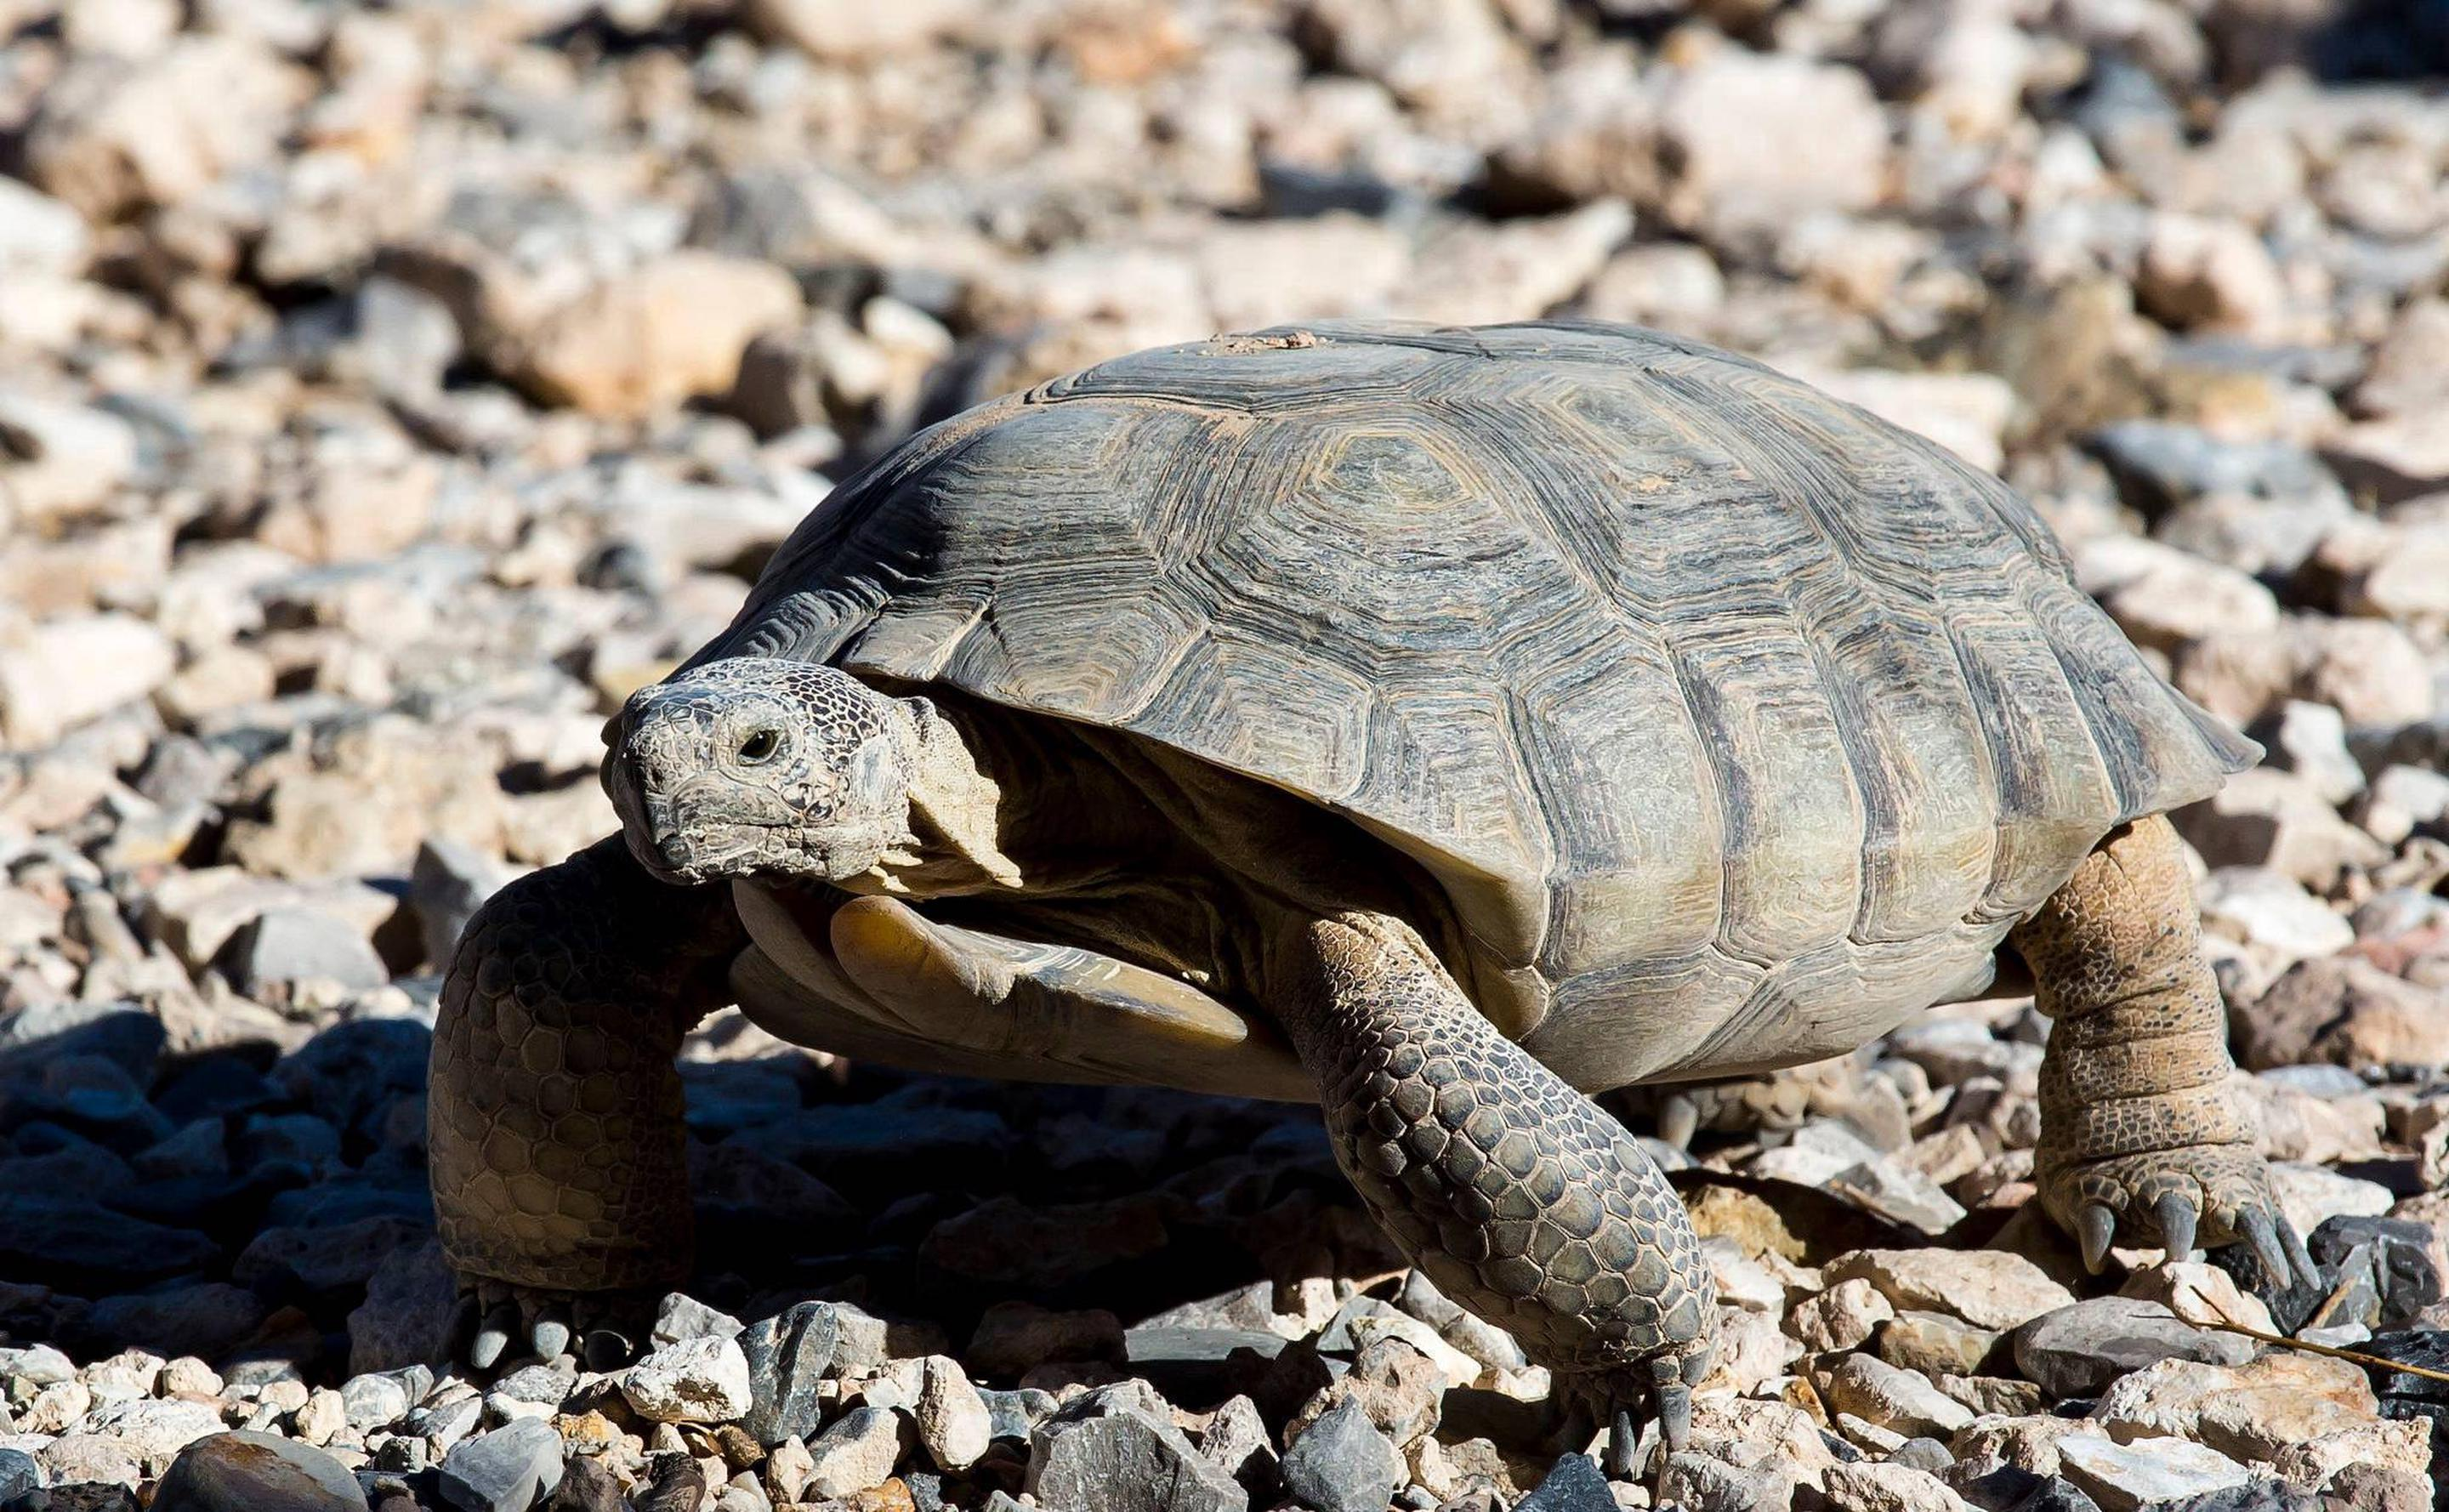 A close-up picture of a desert tortoise.Red Rock Canyon's resident desert tortoise.